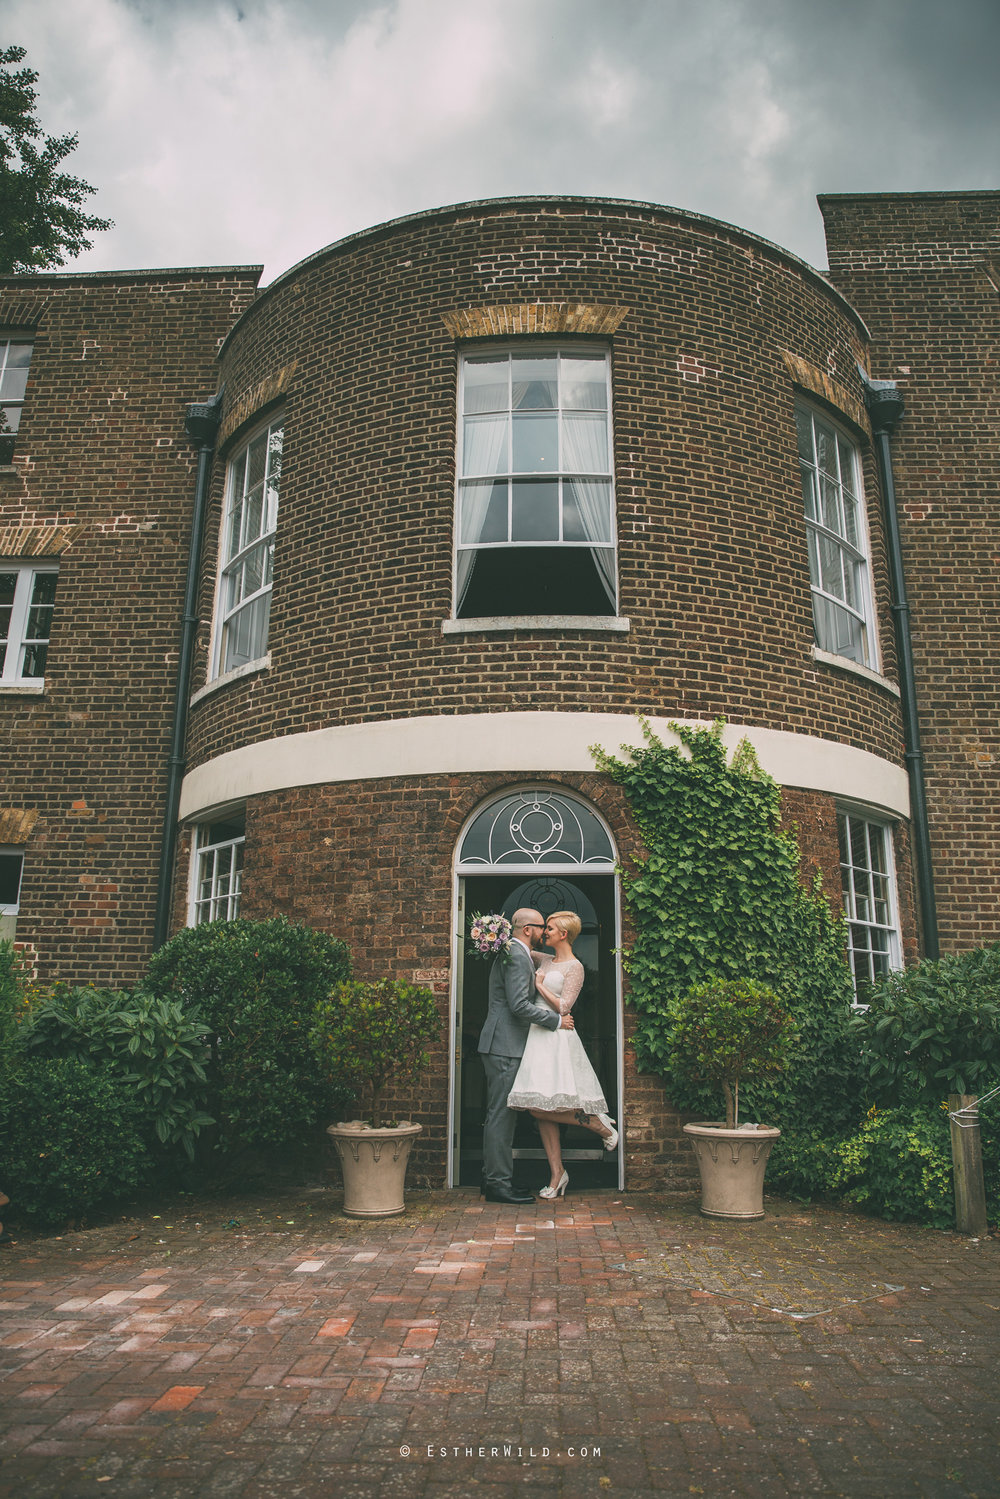 Clapham_Croydon_Morden_Park_London_Wedding_Photographer_Photography_Esther_Wild_Norfolk_IMG_5626.jpg